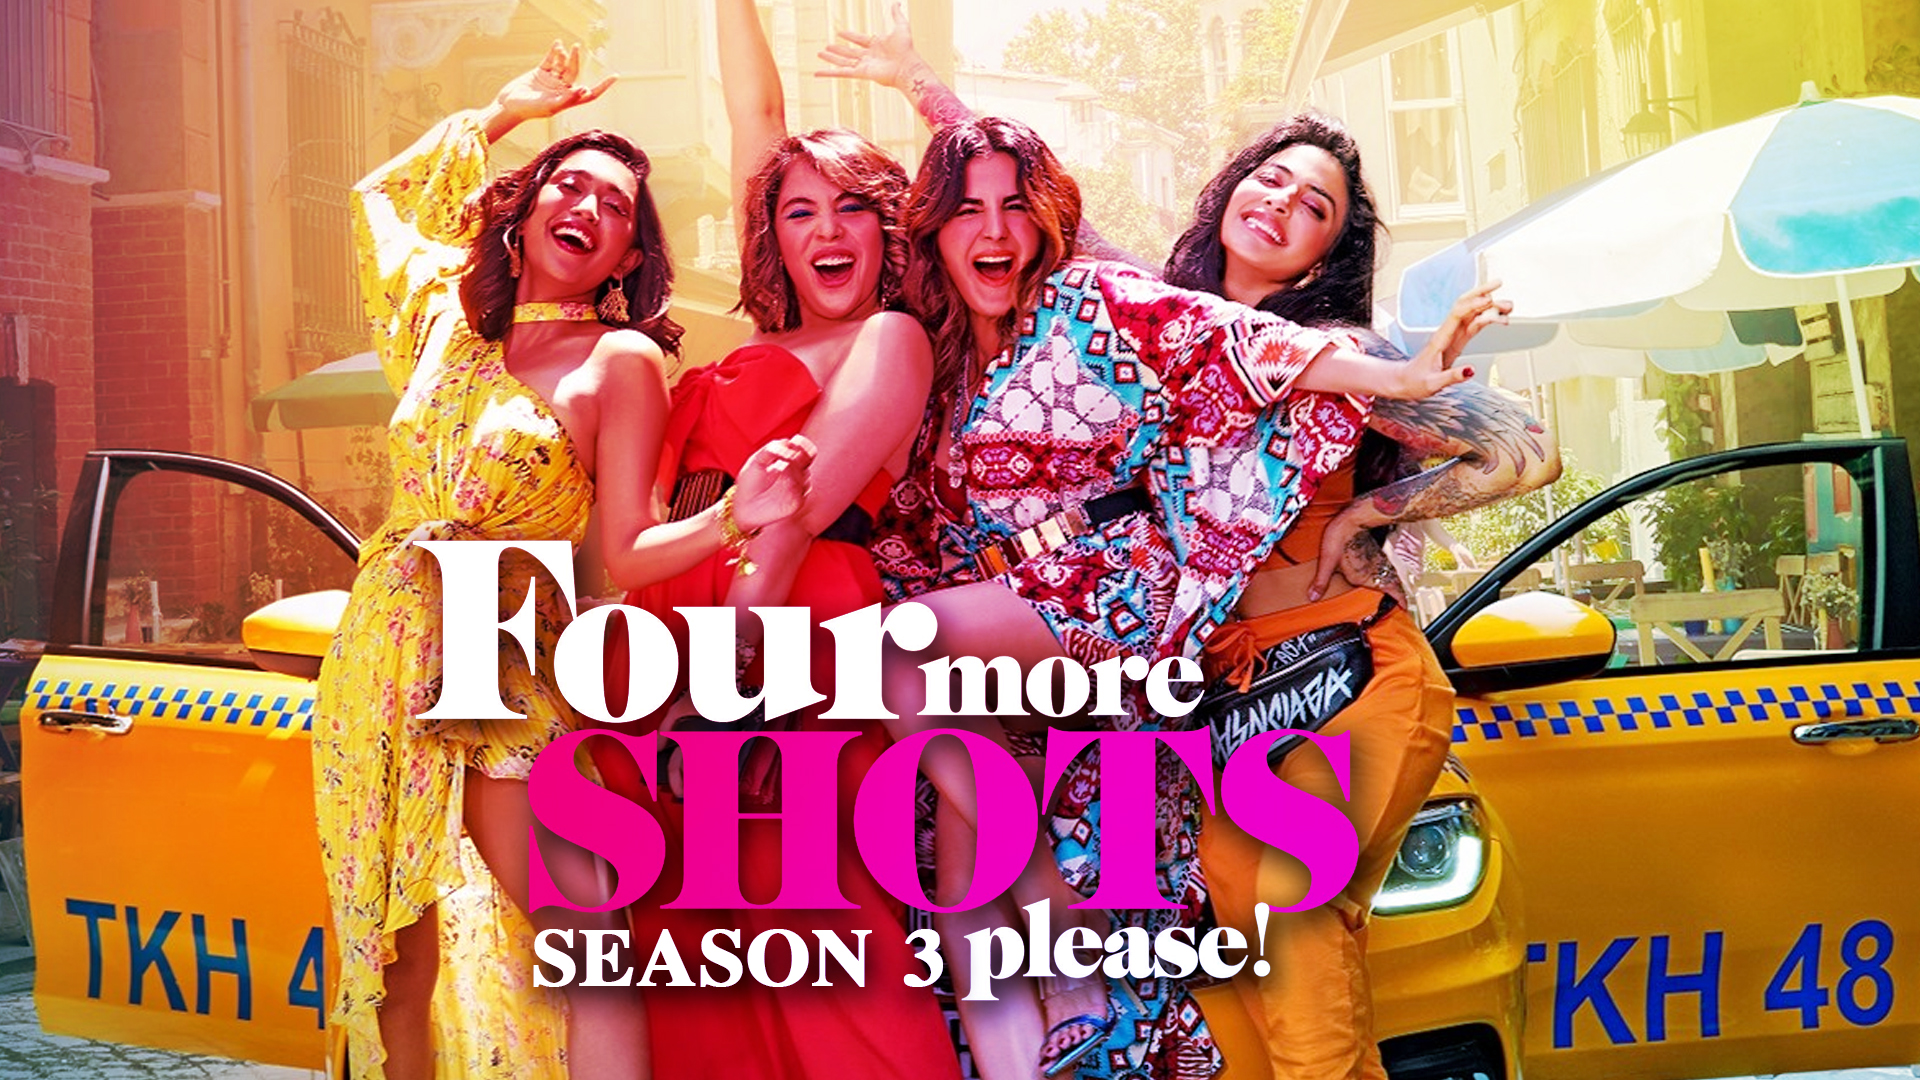 Preview And Renewal: Four More Shots Please Season 3